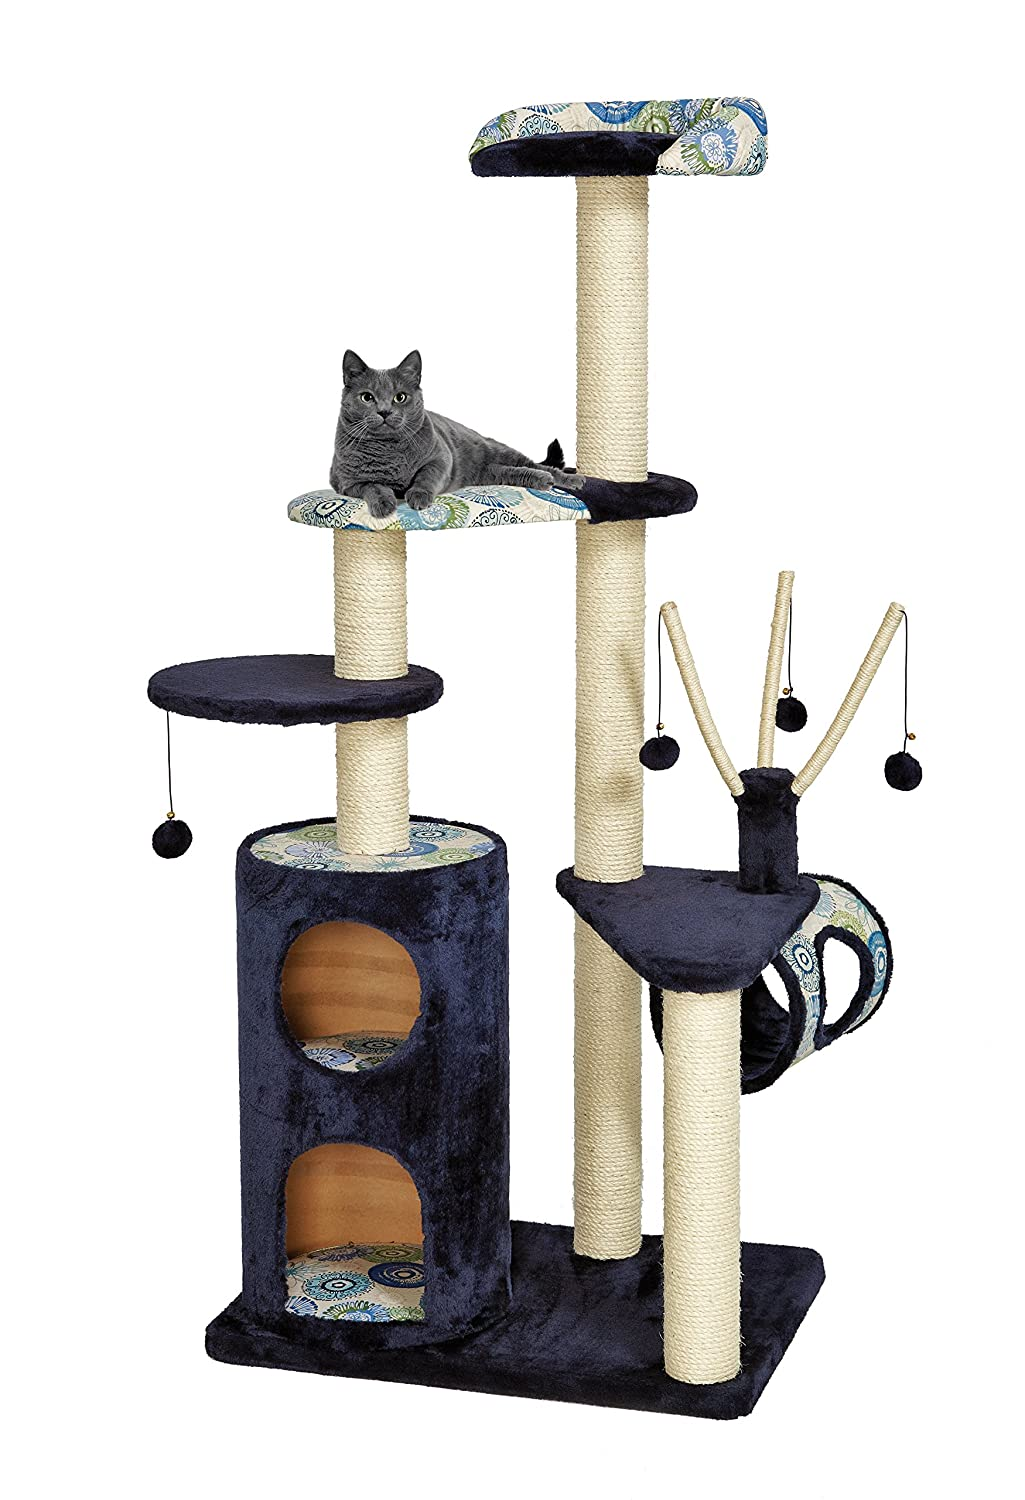 Top 10 Best Cat Tree For Large Cats [Updated November 2020] 13